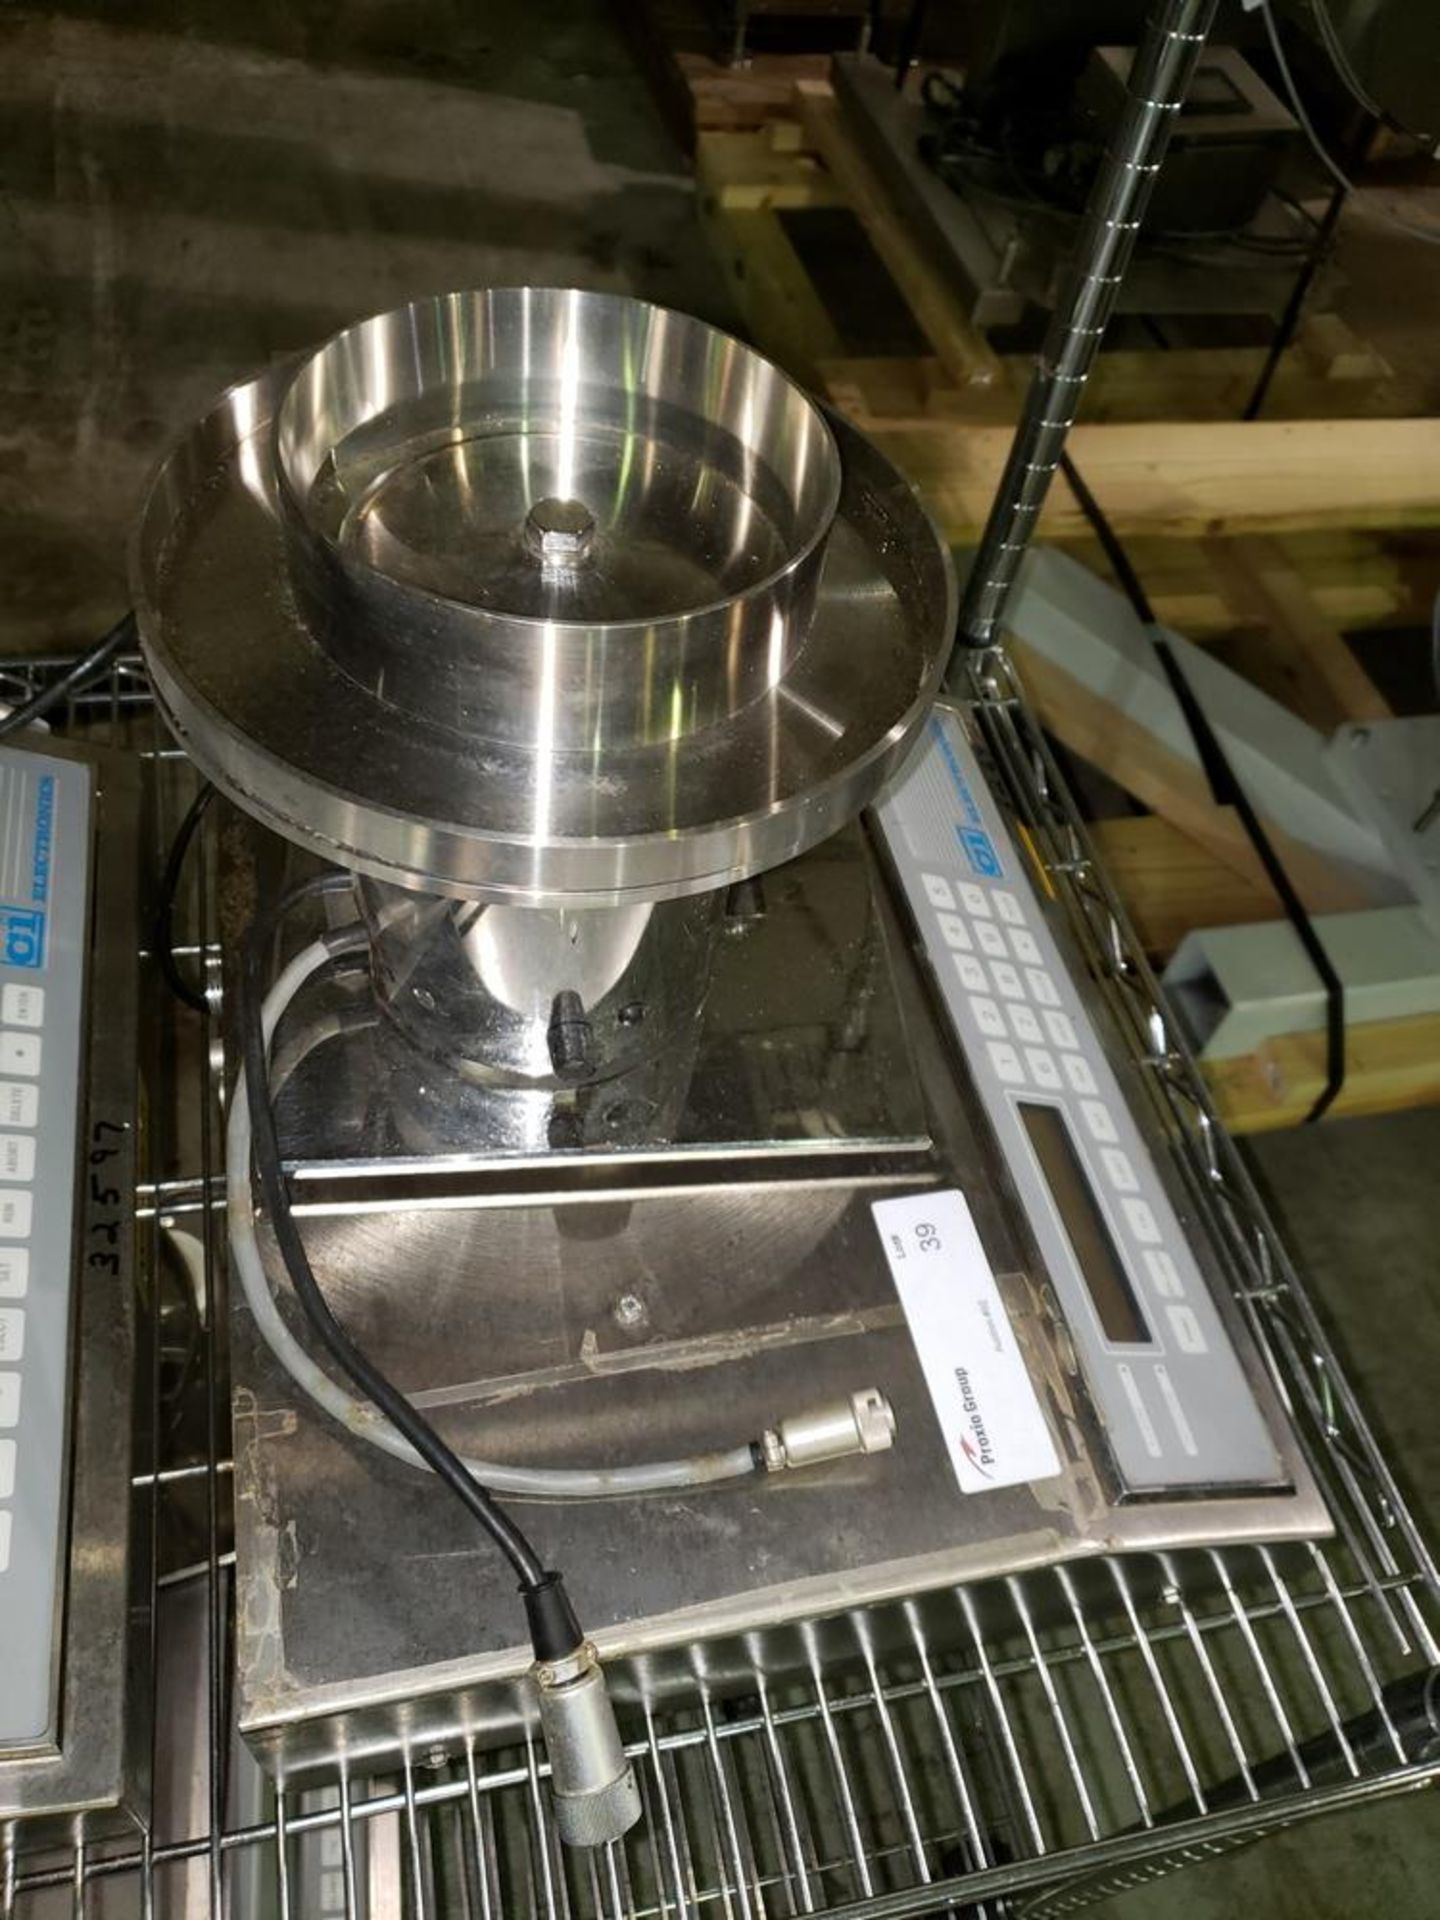 Lot 1 - CI Electronics tablet/capsule checkweigher, 115 volt, serial# TP-389.